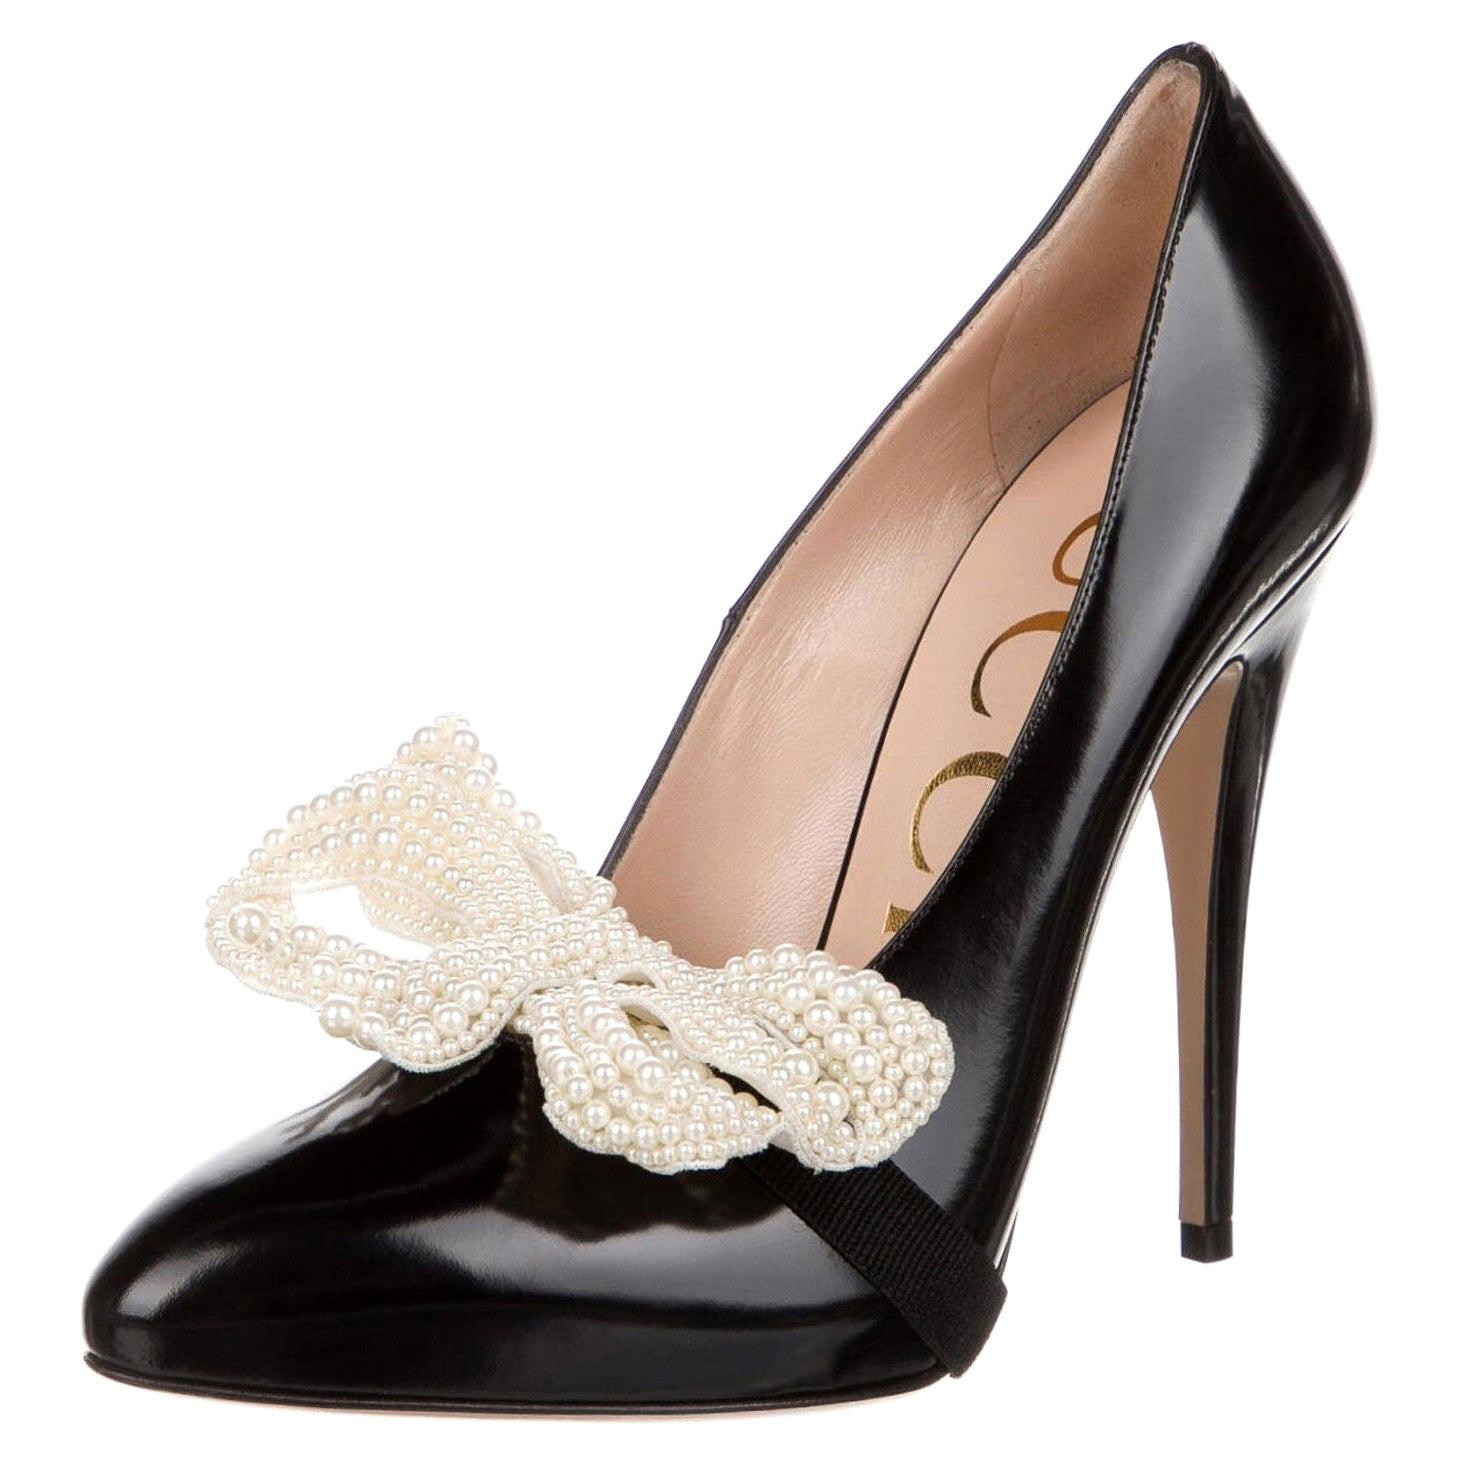 New Gucci Black Leather & Pearl Pumps Heels With Box Sz 37 $1855 Spring 2017